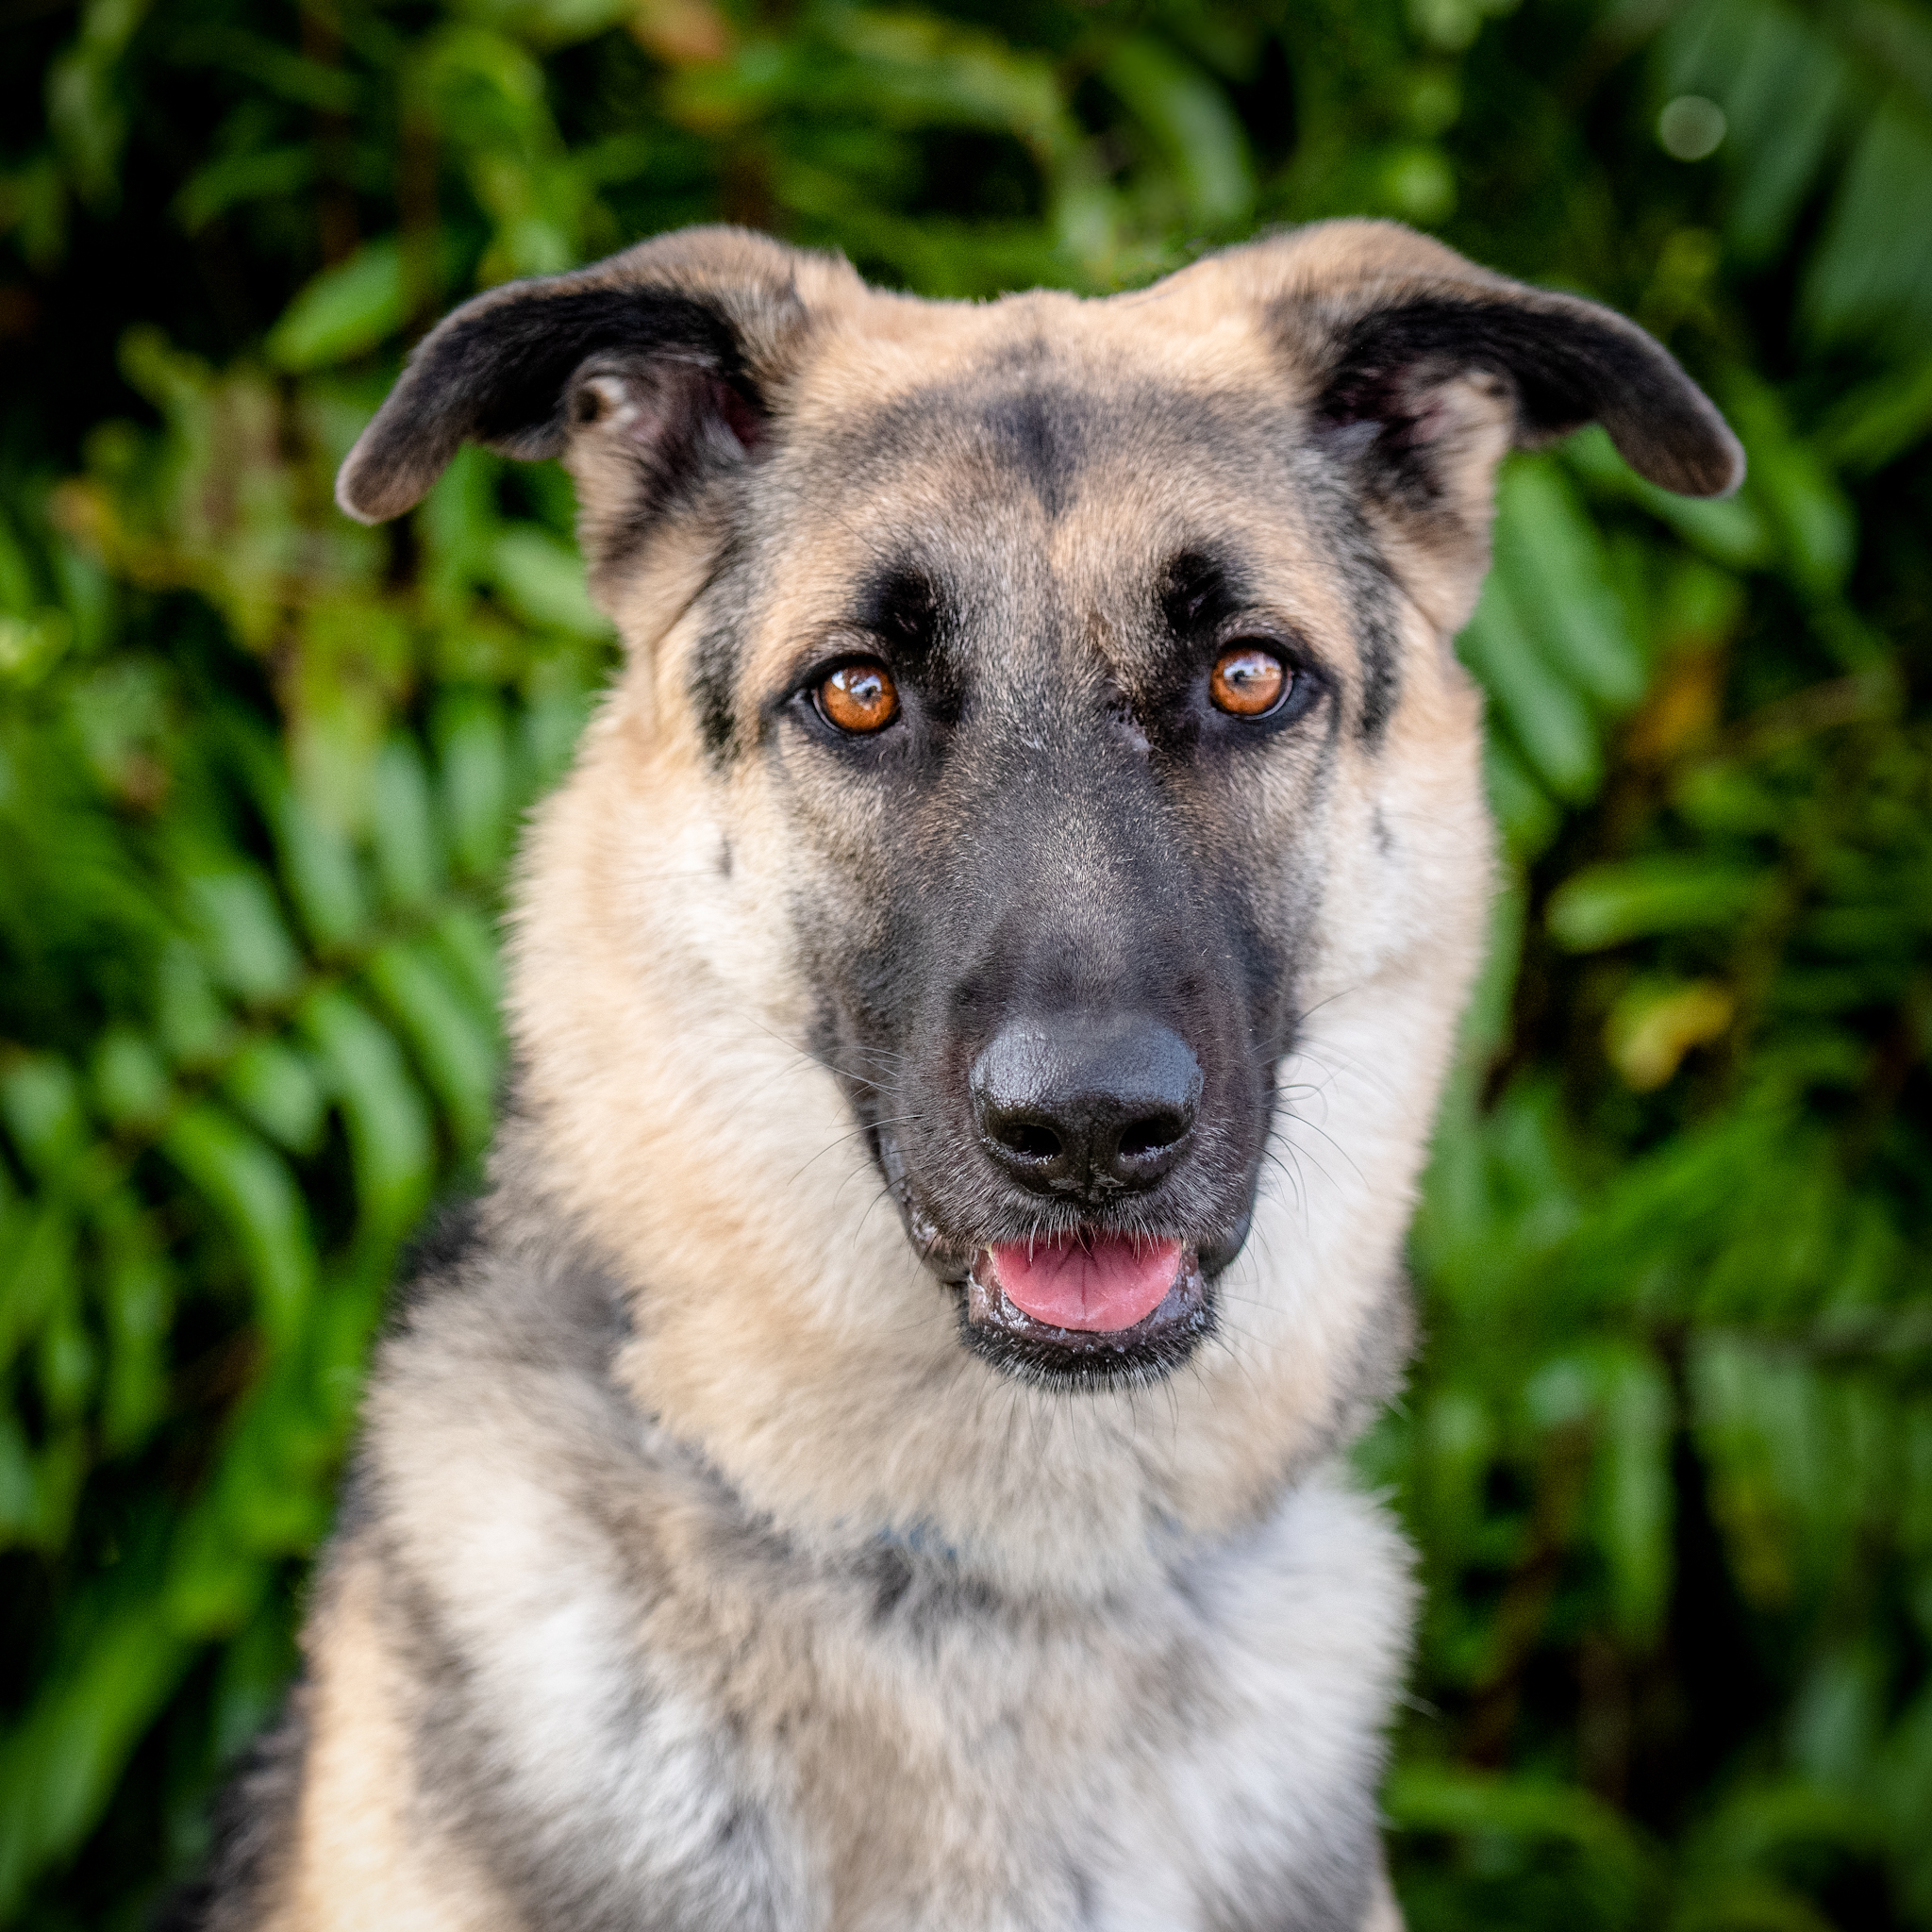 A German shepherd dog looks at the camera.